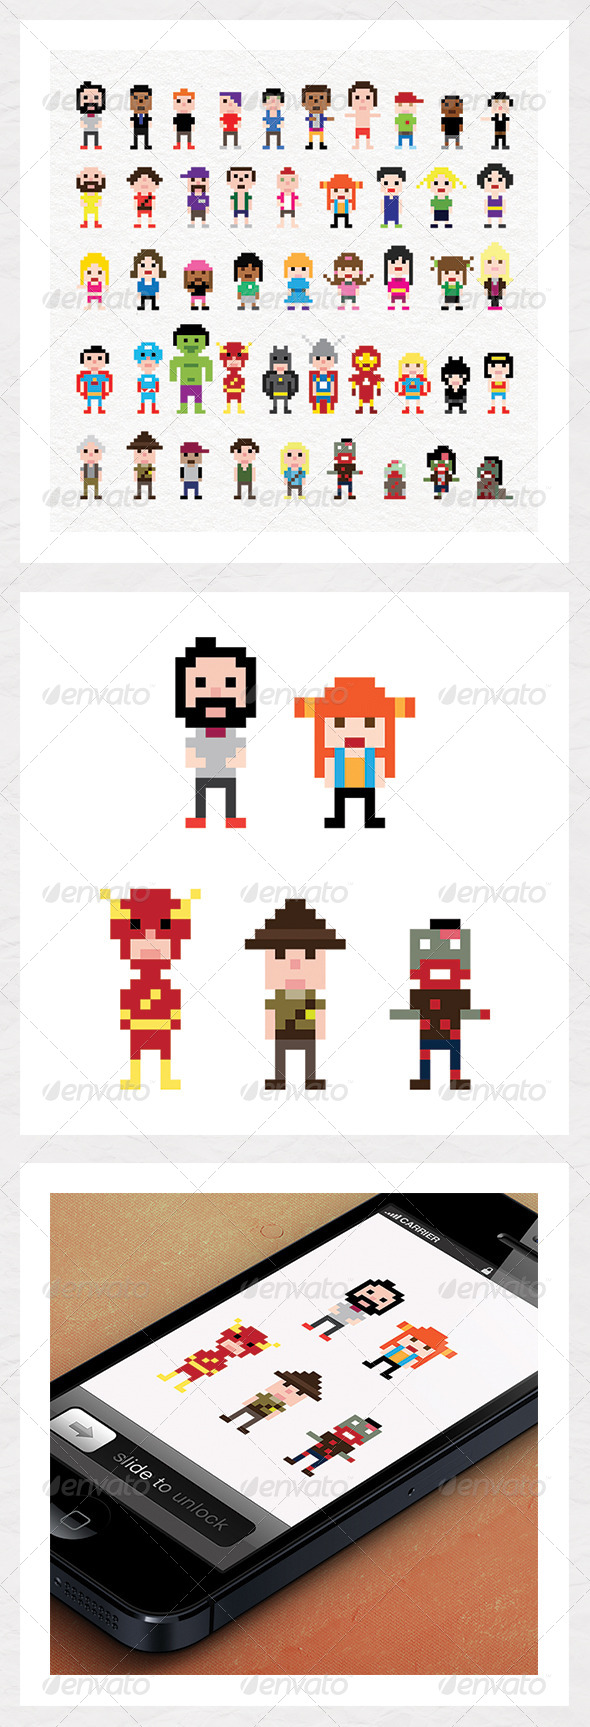 GraphicRiver Pixel Characters 5382533